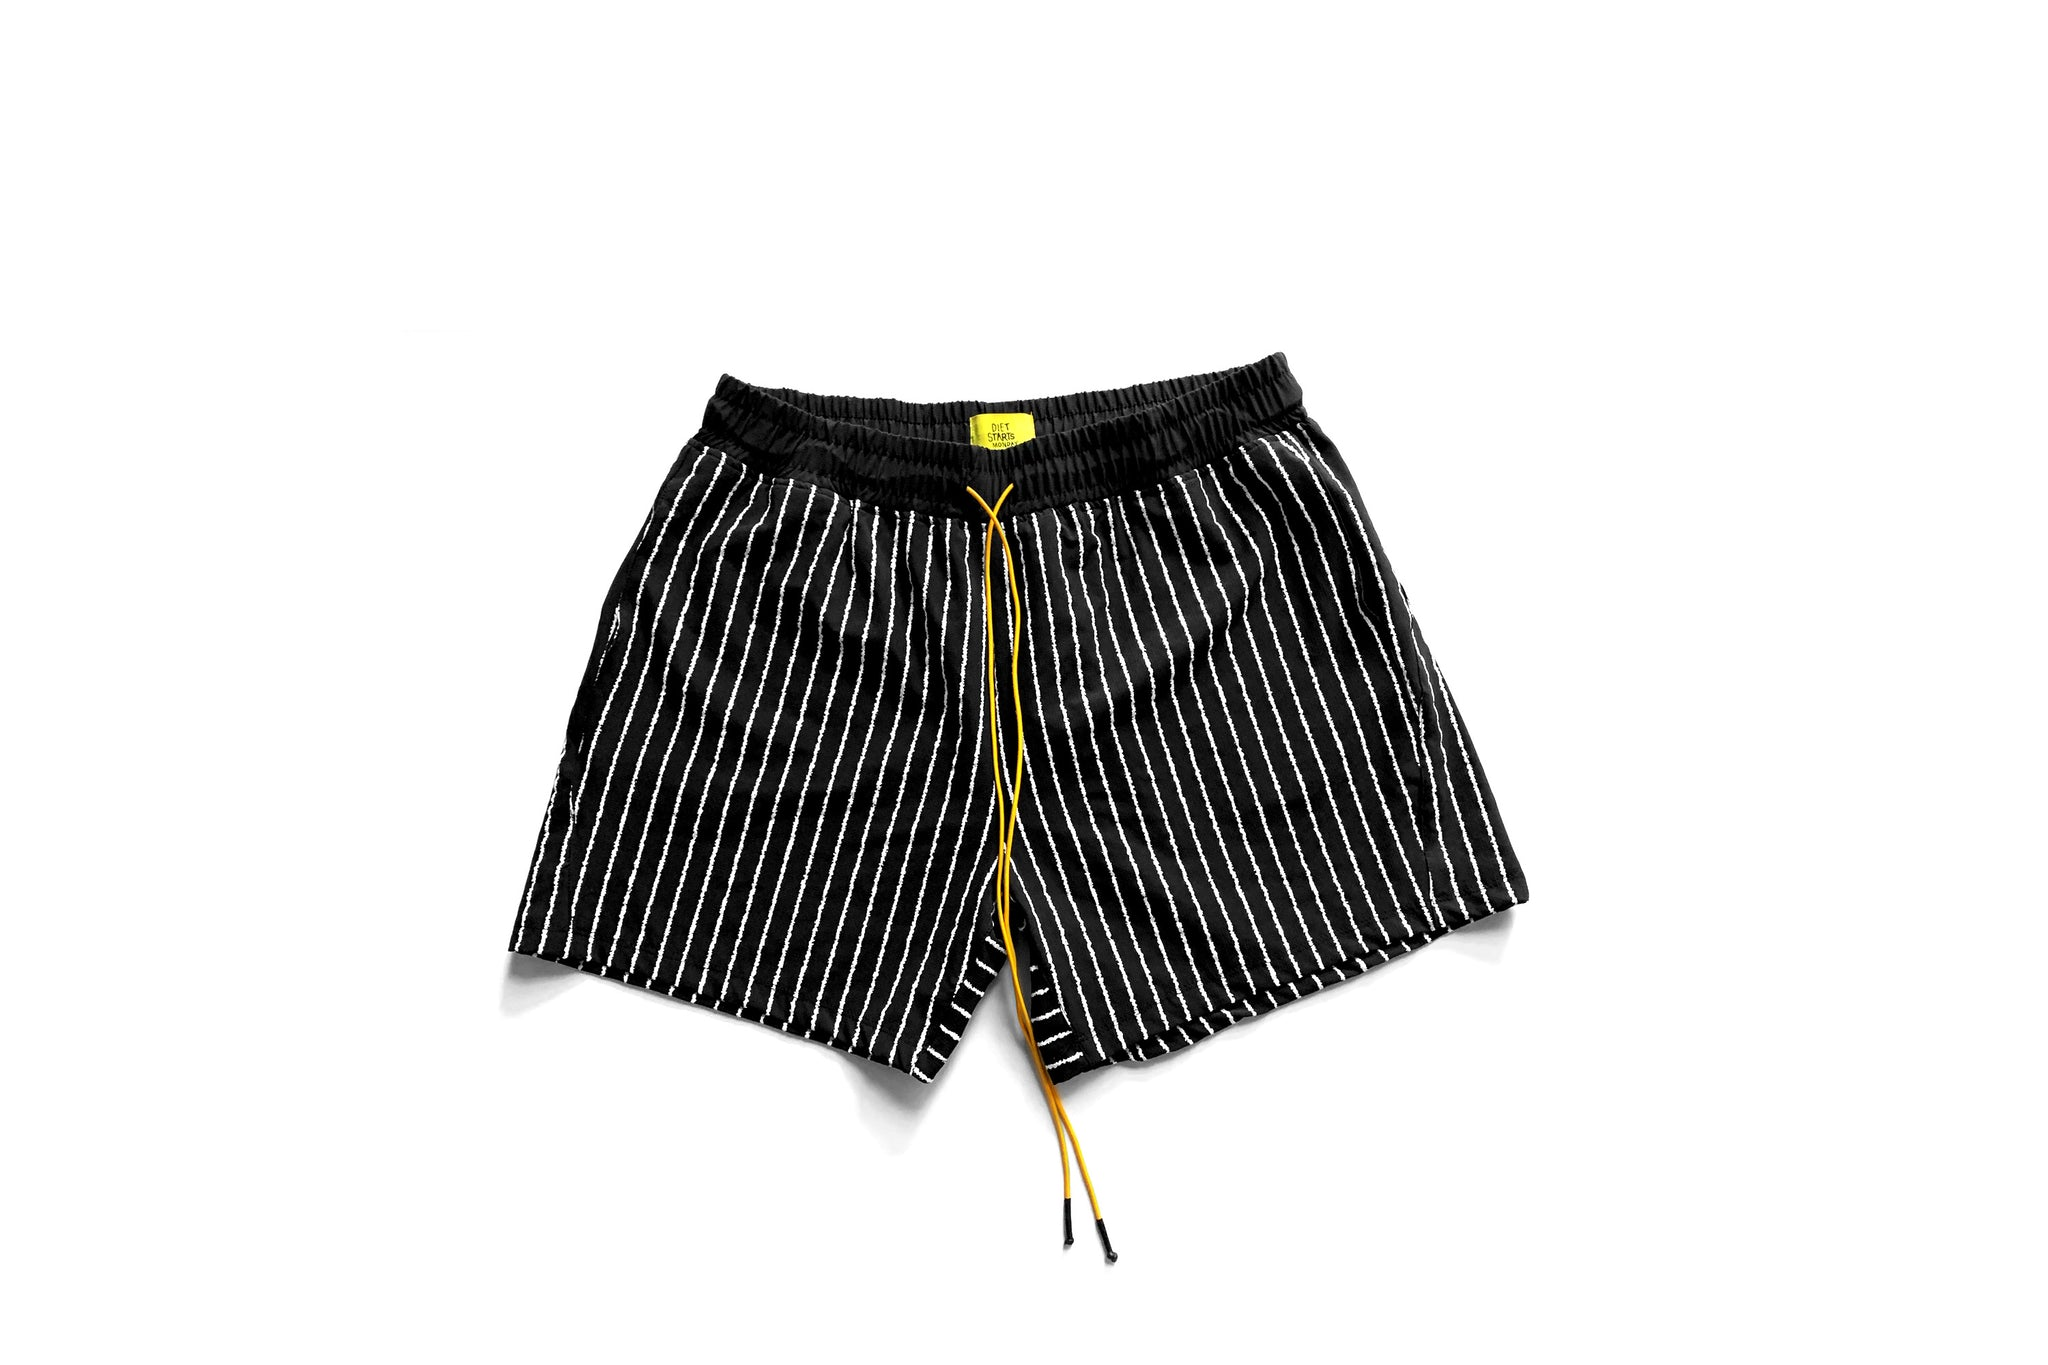 DSM Bay Short - Black/White